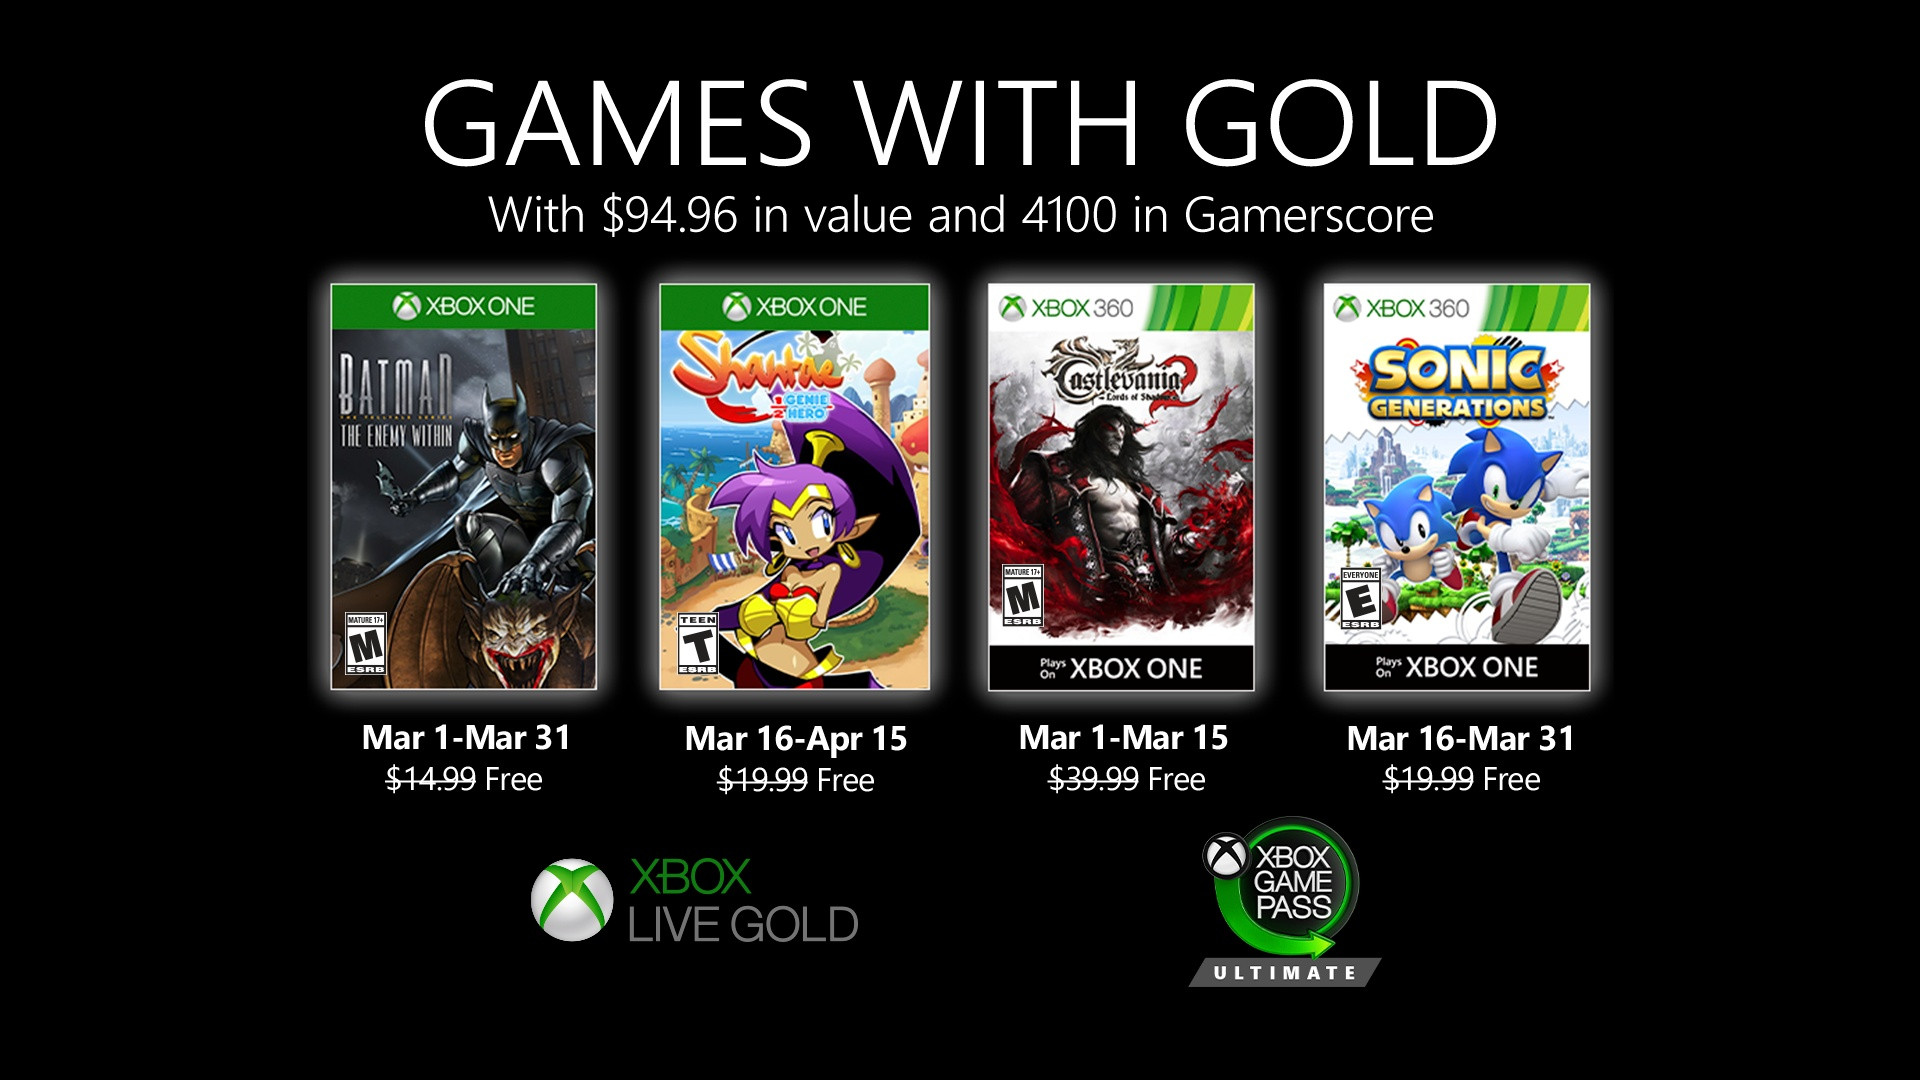 These are the Games with Gold games of March 2020